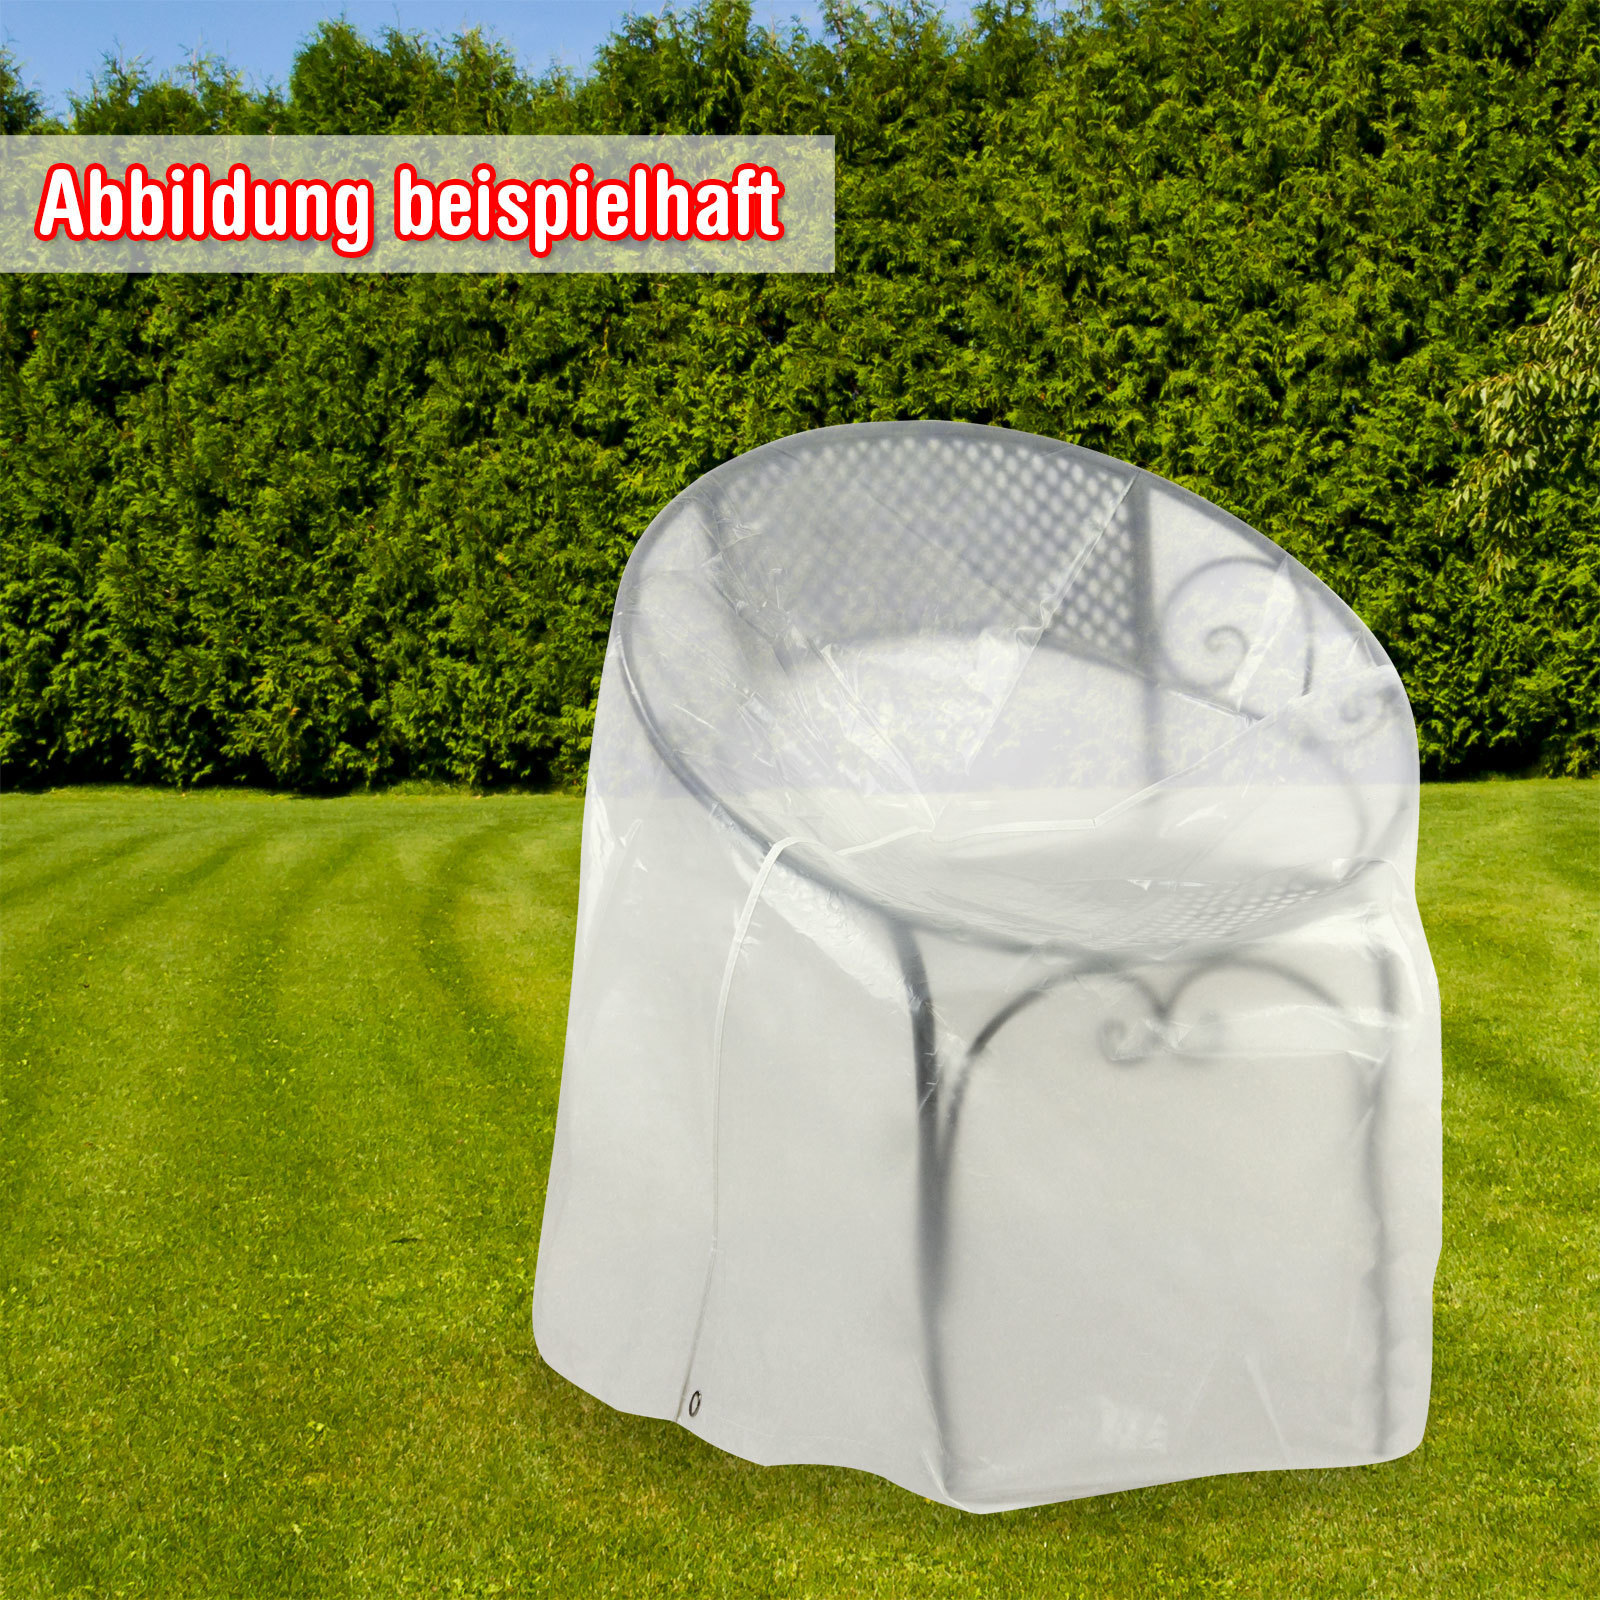 schutzh lle h lle f r gartenliege liege sonnenliege gartenm bel 200x75x45 cm ebay. Black Bedroom Furniture Sets. Home Design Ideas